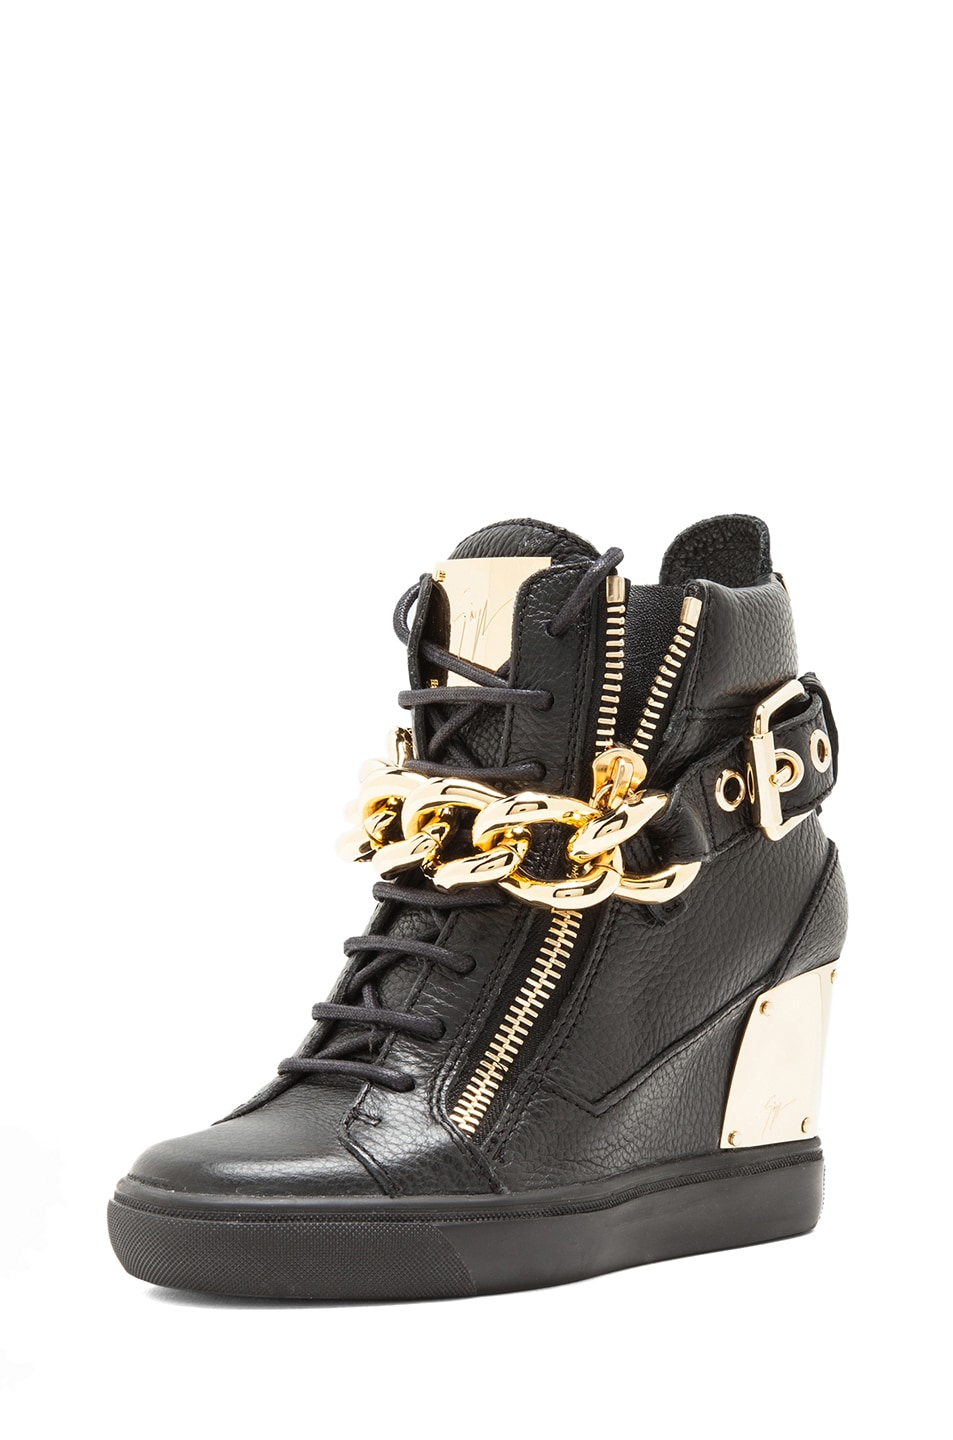 Image 2 of Giuseppe Zanotti Lorenz Grained Leather Wedge Sneakers with Chain in Black